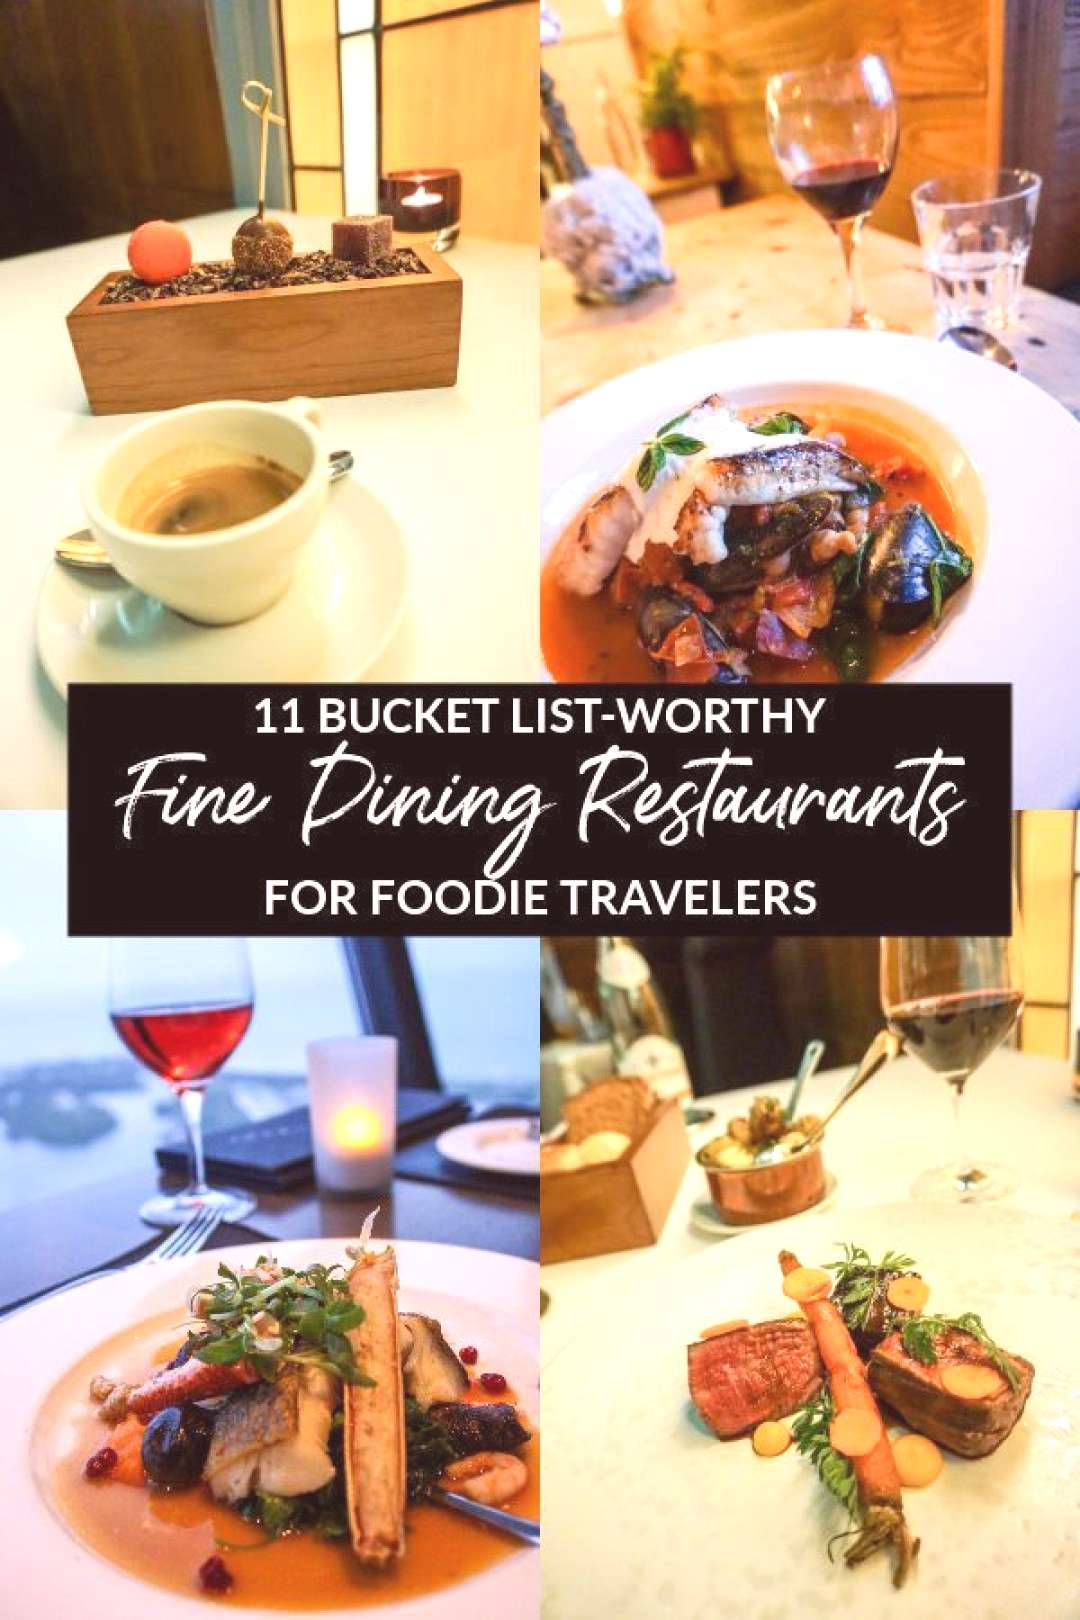 11 Bucket List-Worthy Fine Dining Restaurants For Foodie Travelers -  Are you a foodie traveler who